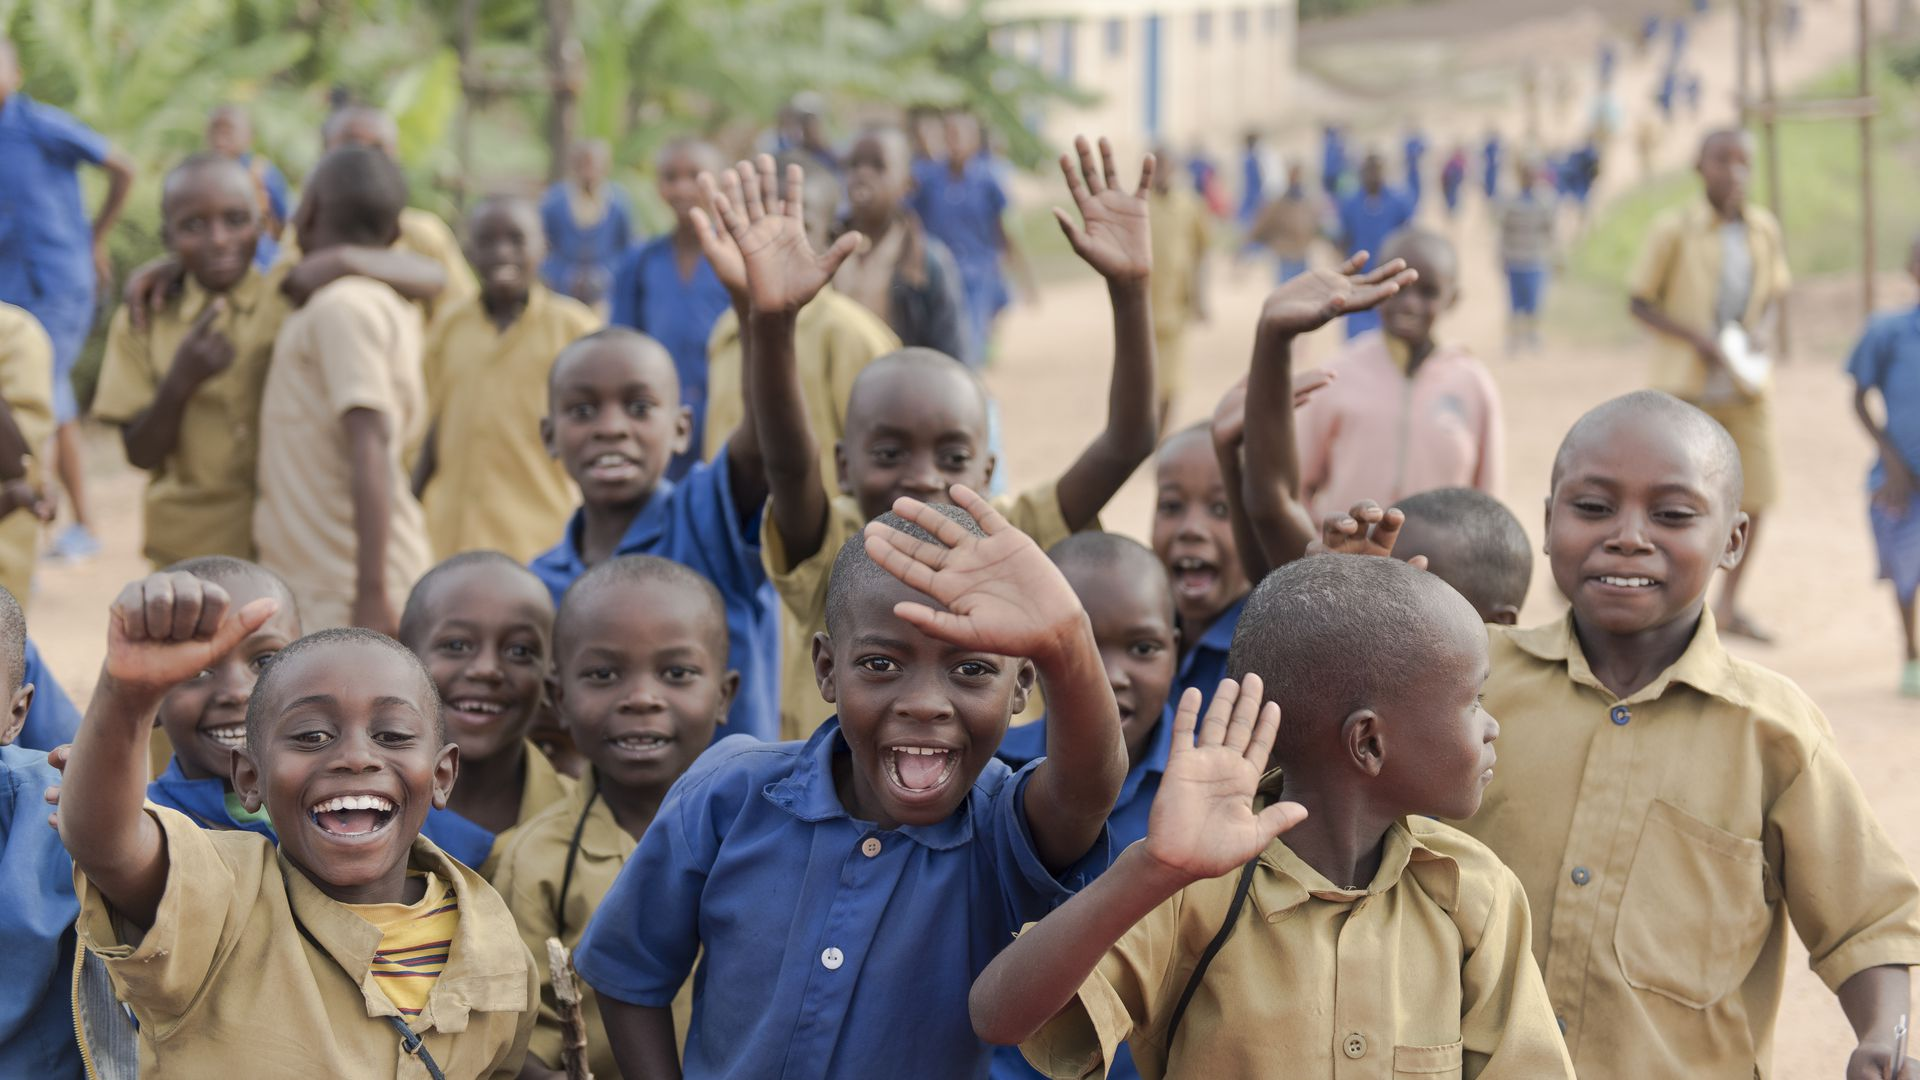 Primary school children wave after school in the Kyaumbu Sector of Rwanda.